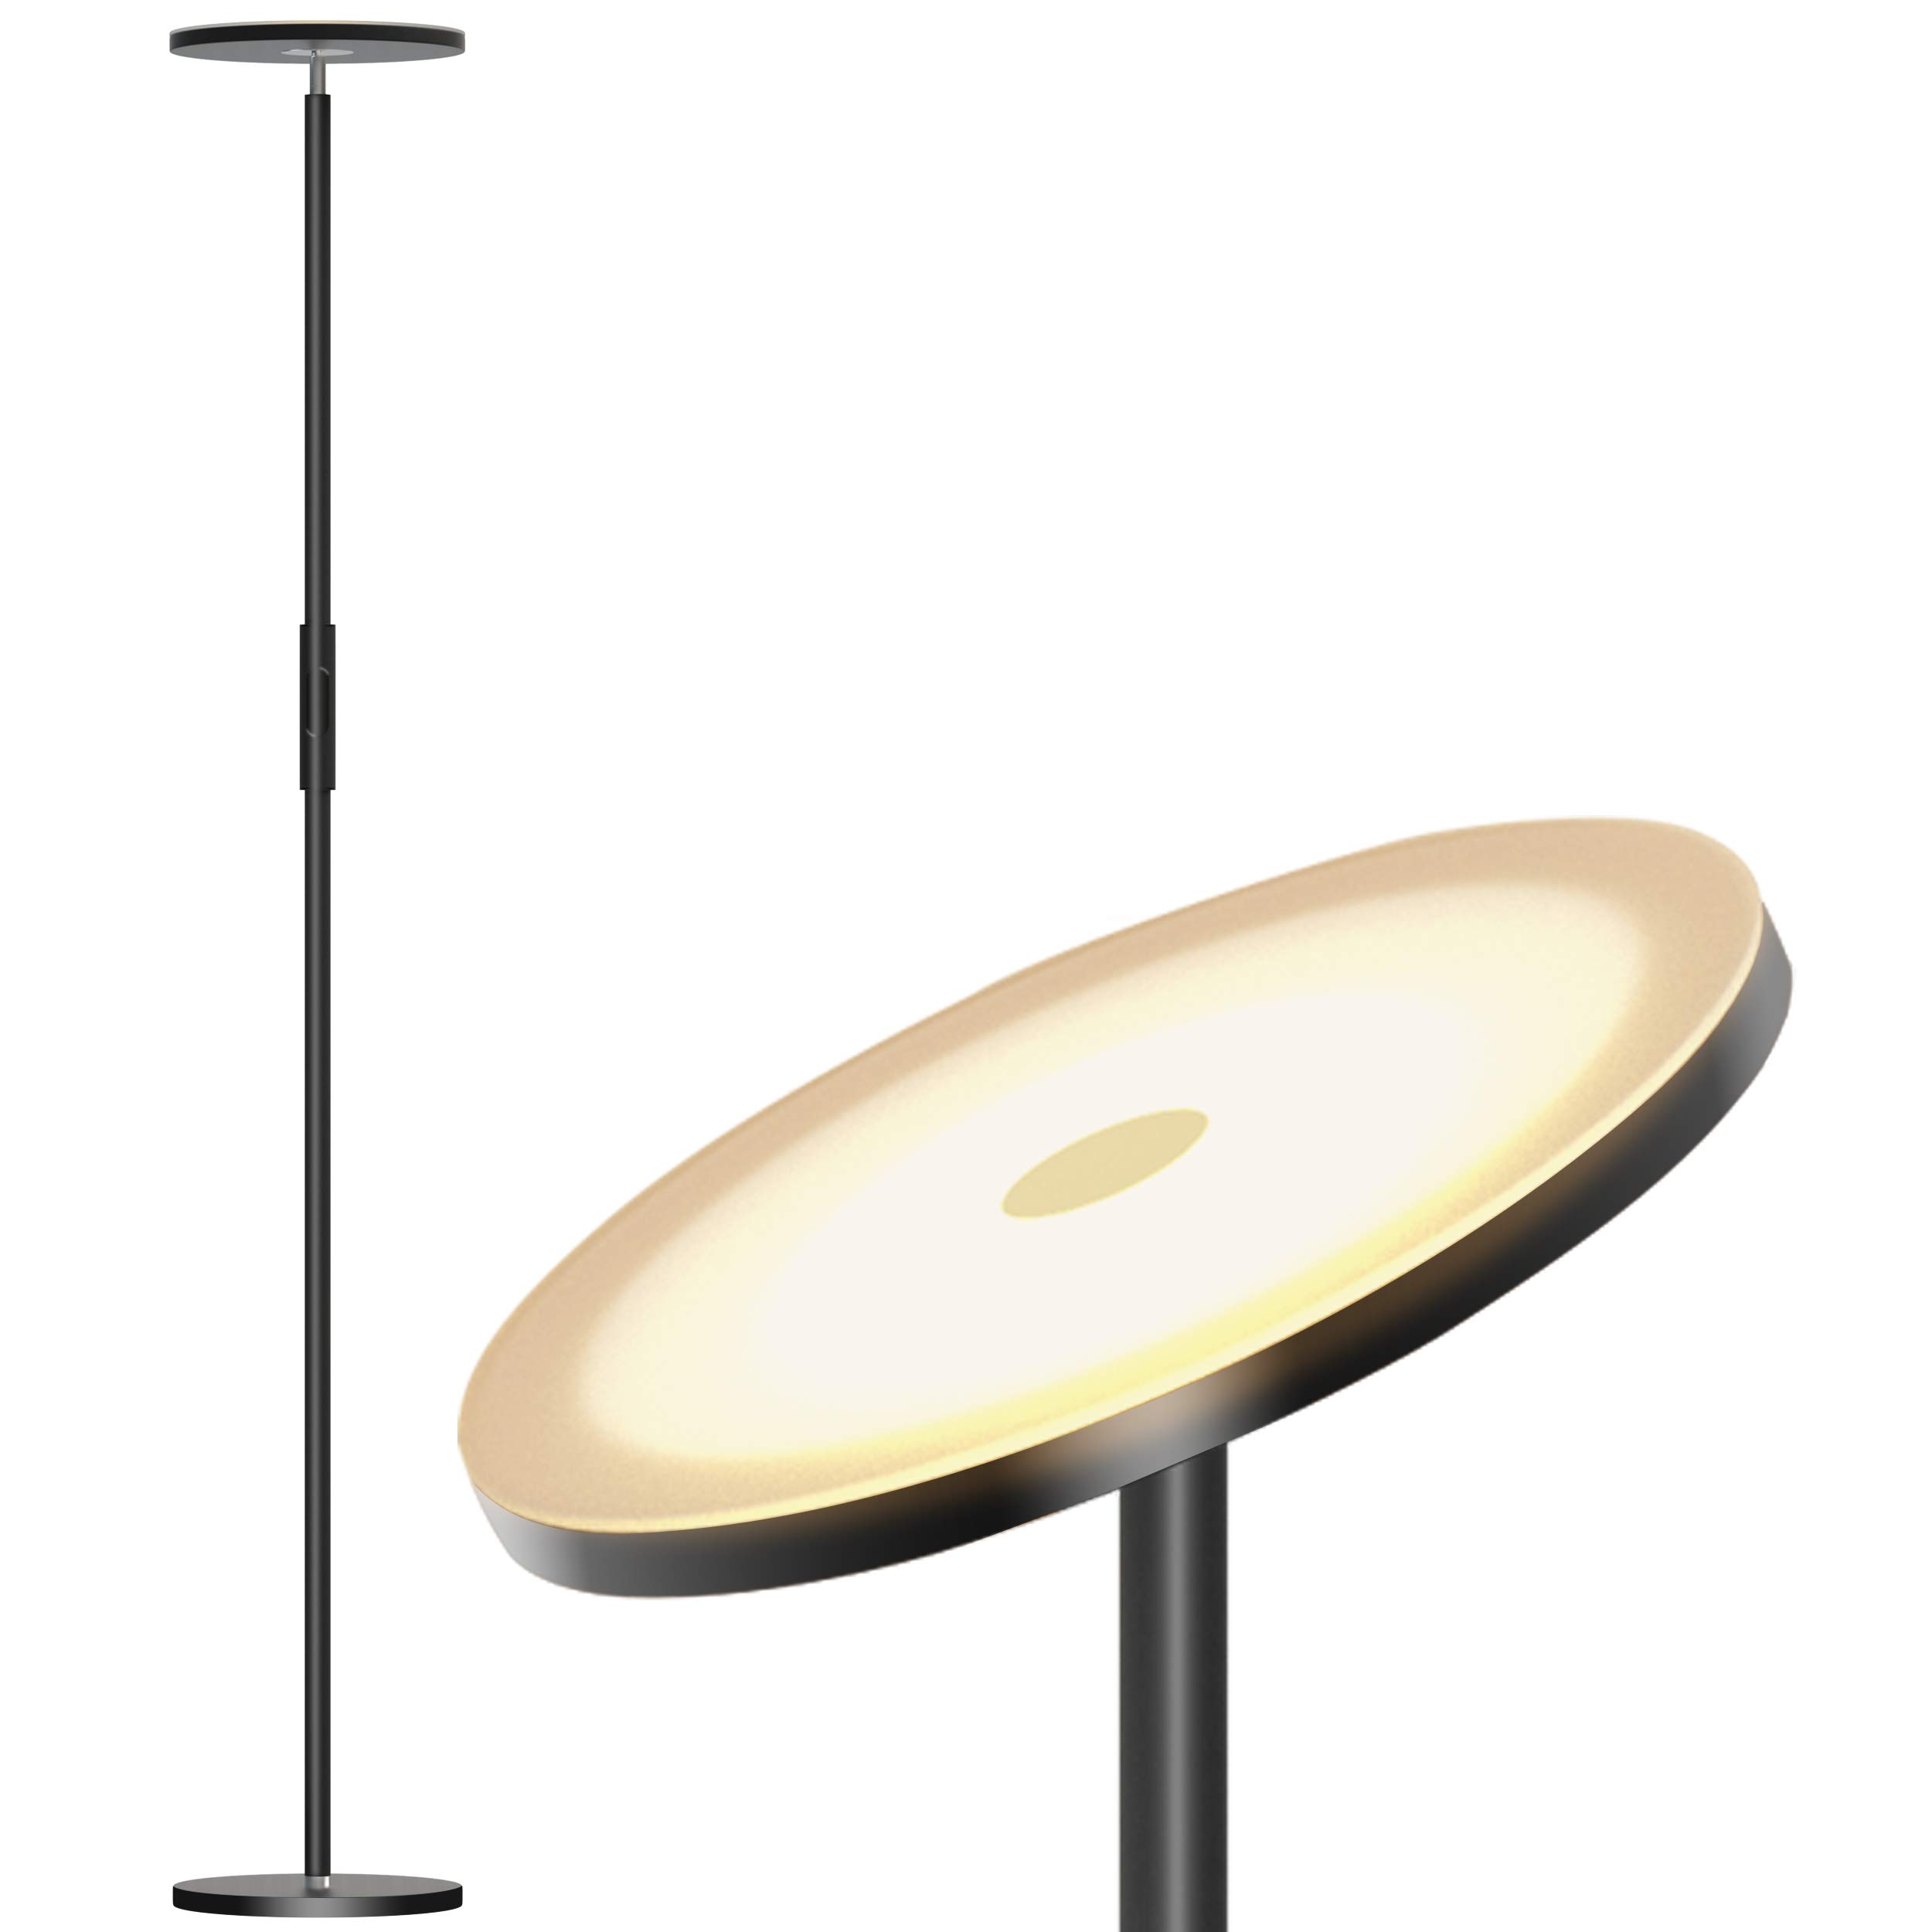 LED Torchiere Floor Lamp Dimmable 30W, Tall Standing Modern Pole Light for Living Rooms & Offices, Compatible with Wall Switch